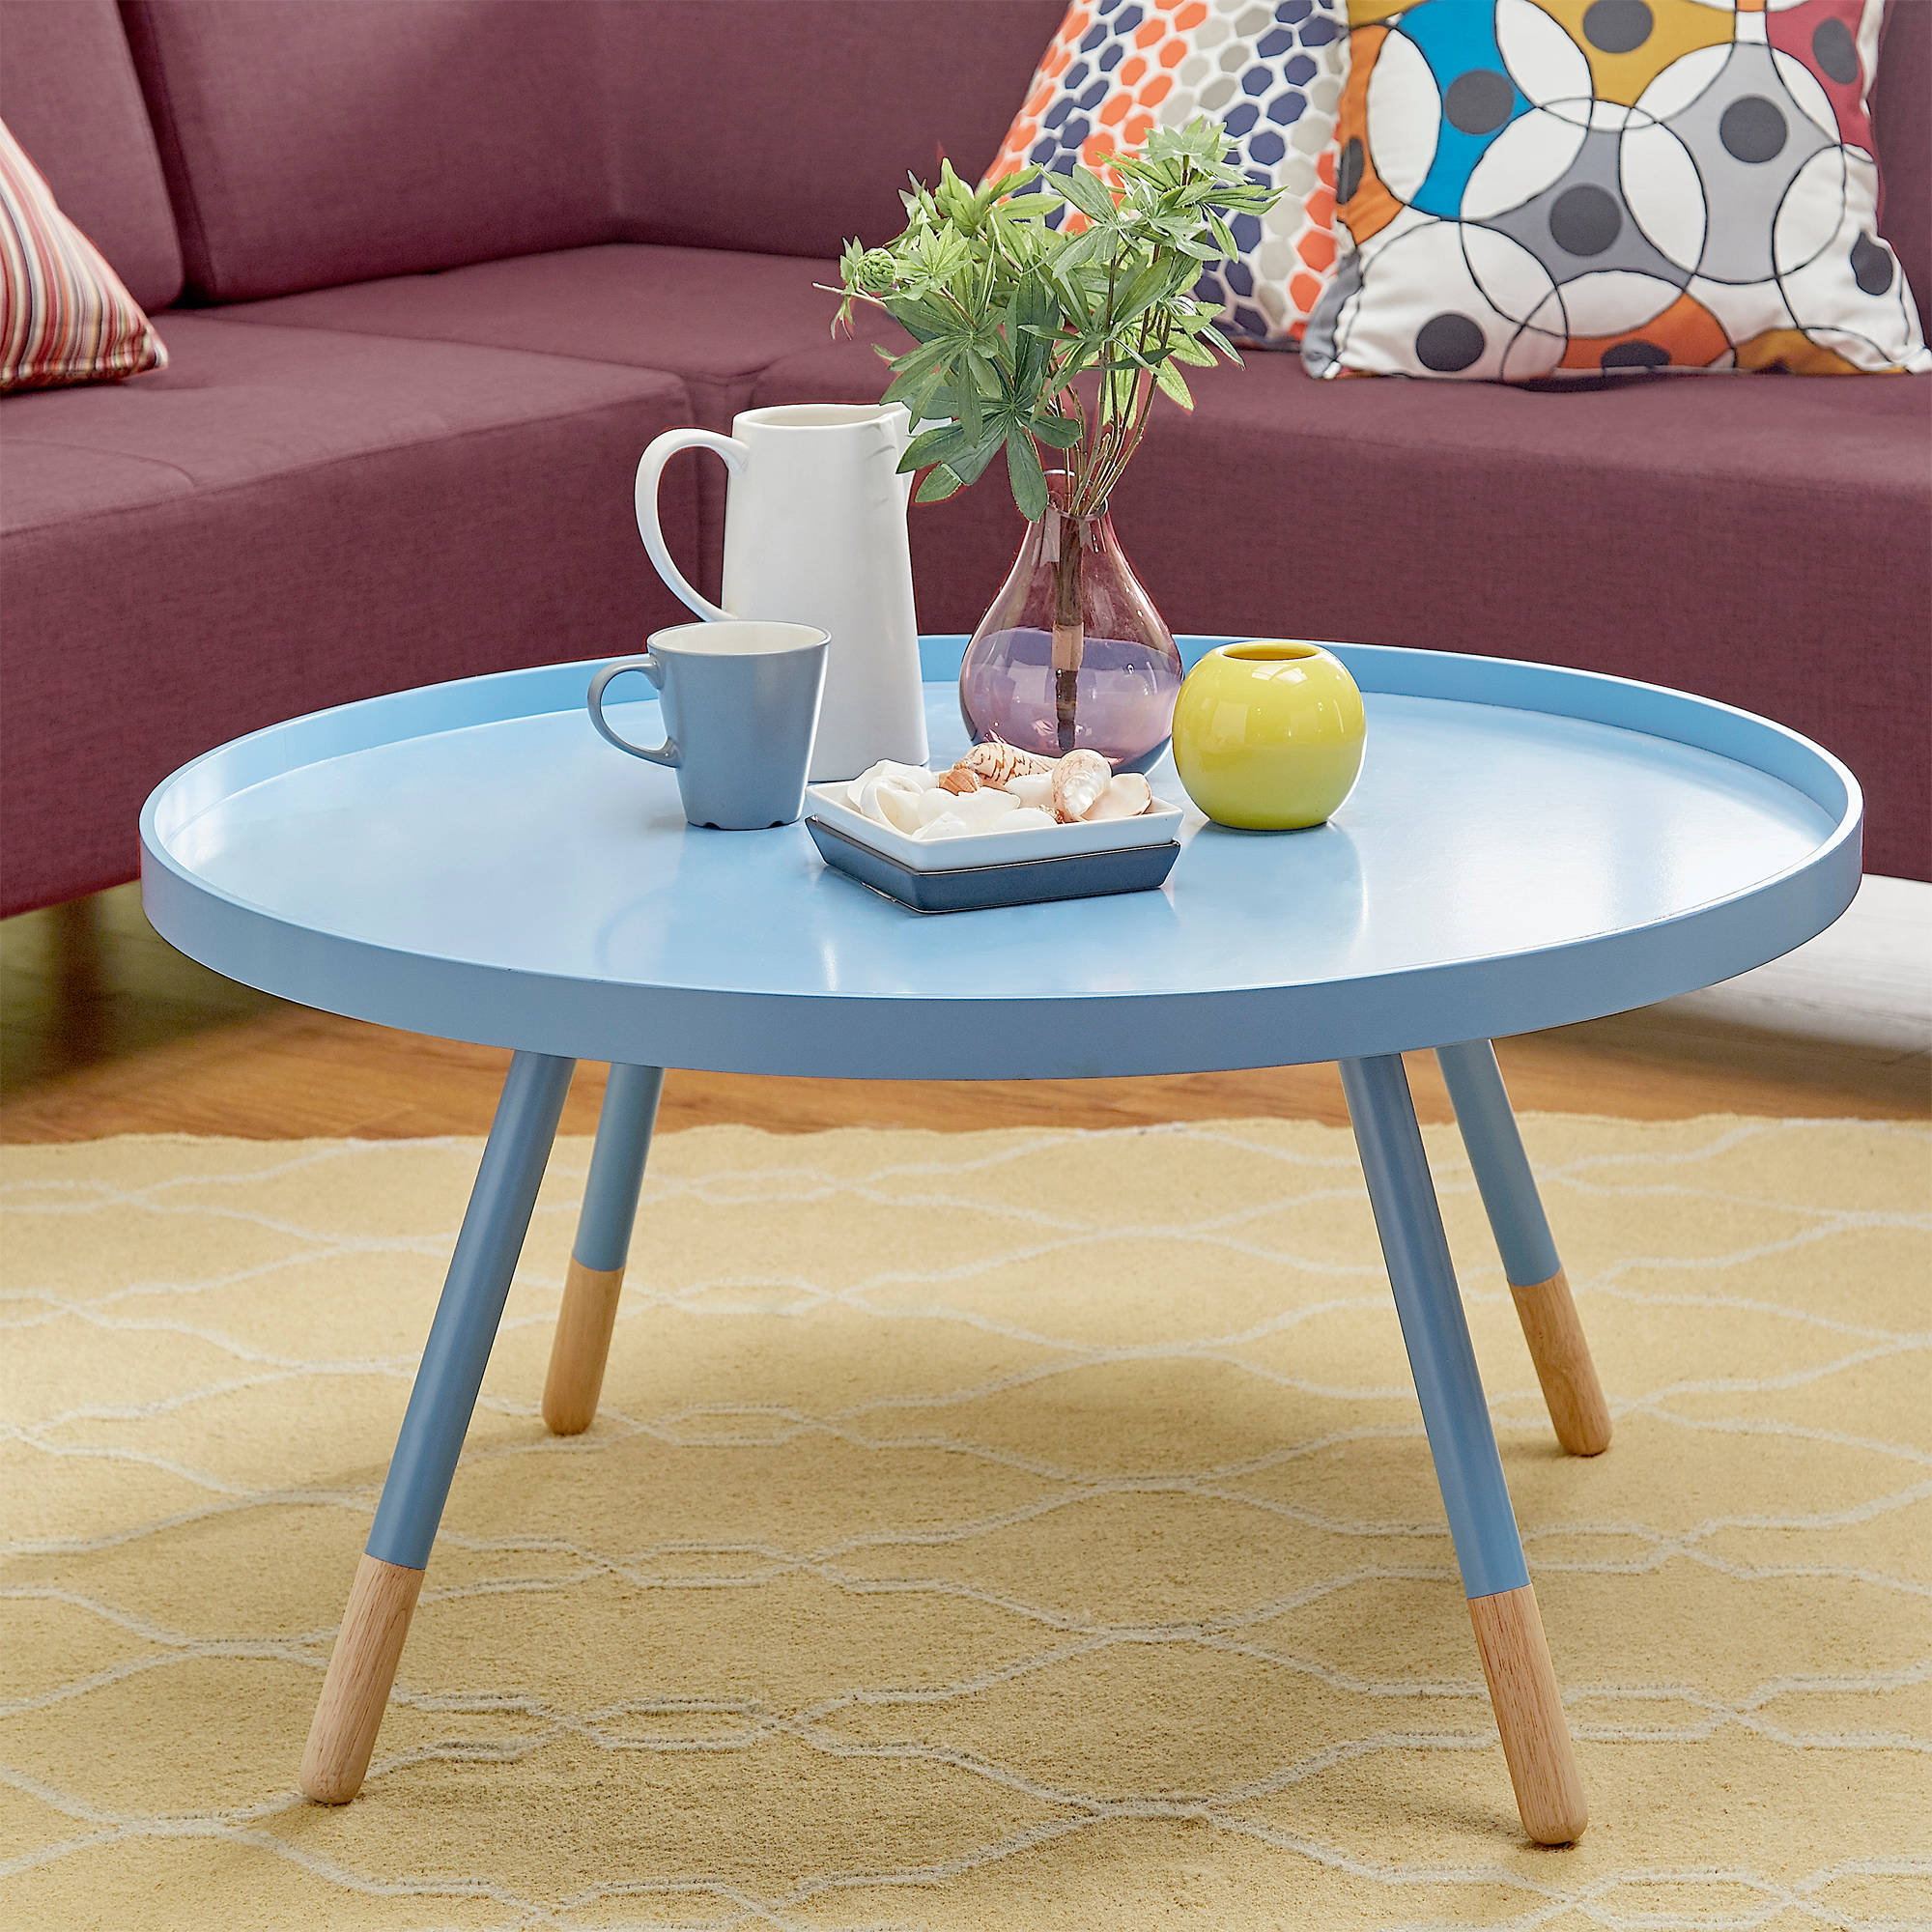 Chelsea Lane Round Tray Coffee Table, Multiple Colors